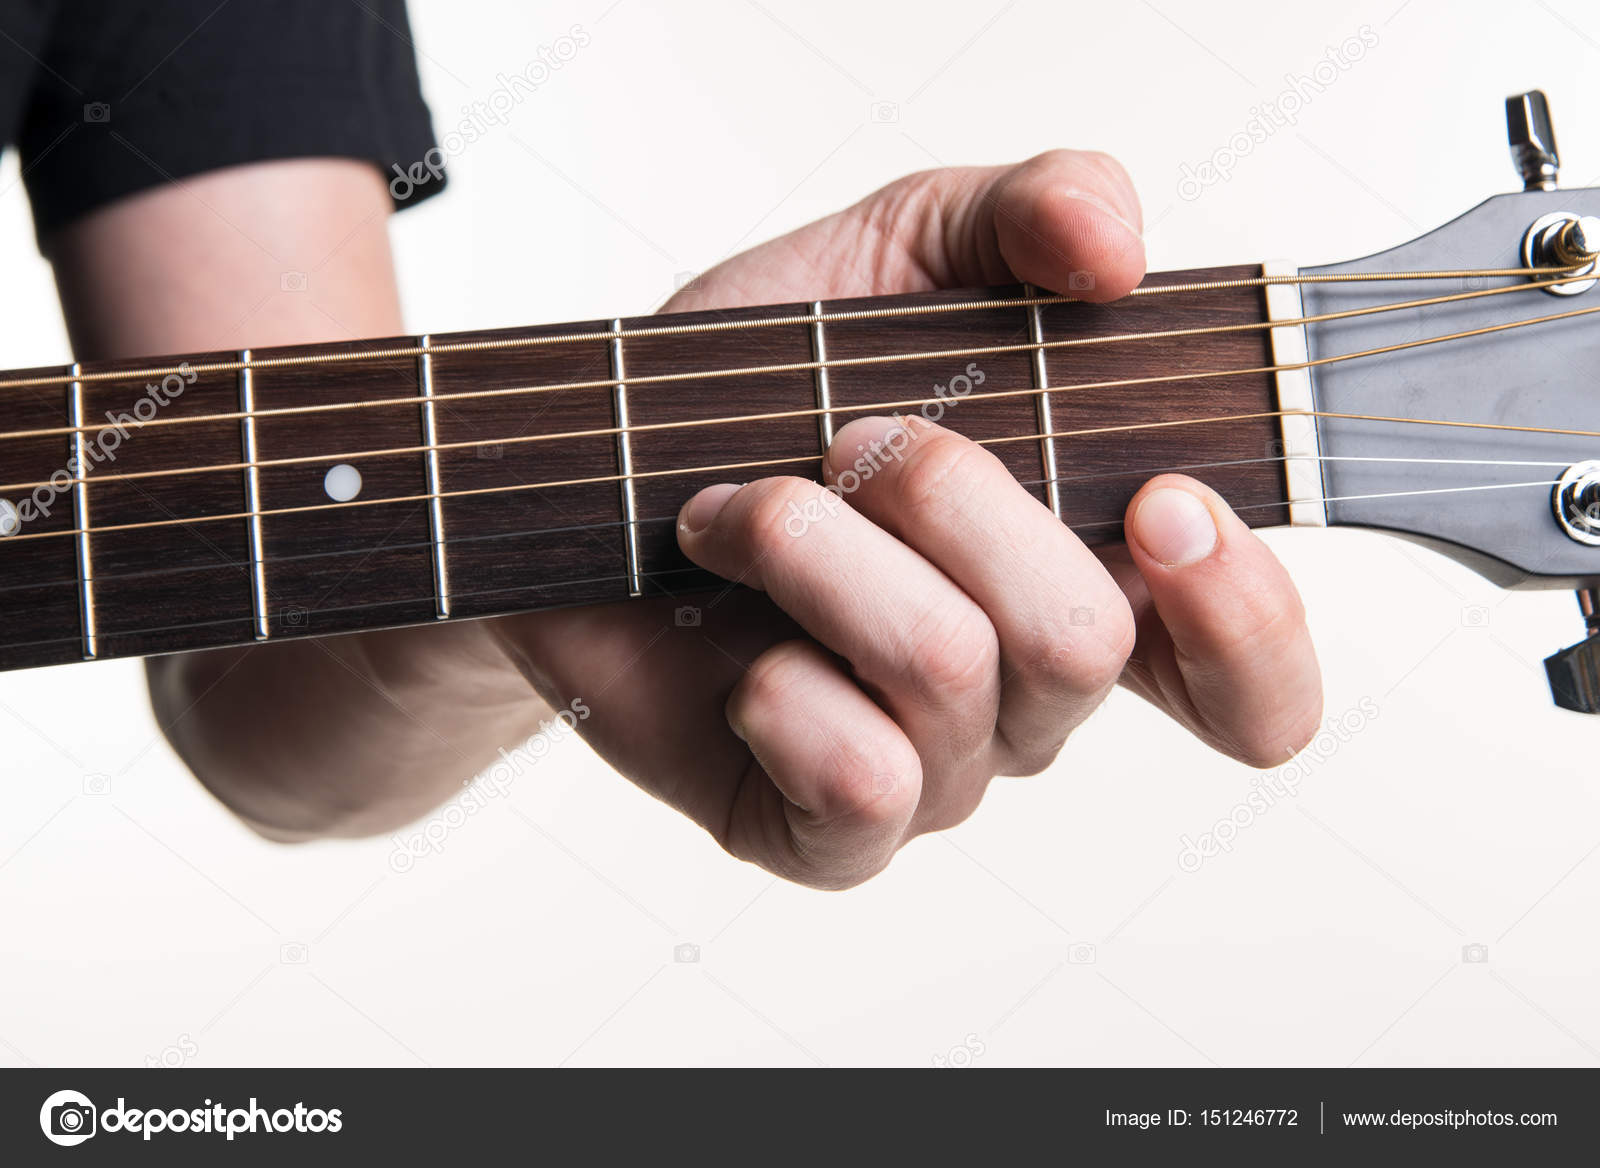 The Guitarists Hand Clamps The Chord Dmon The Guitar On A White